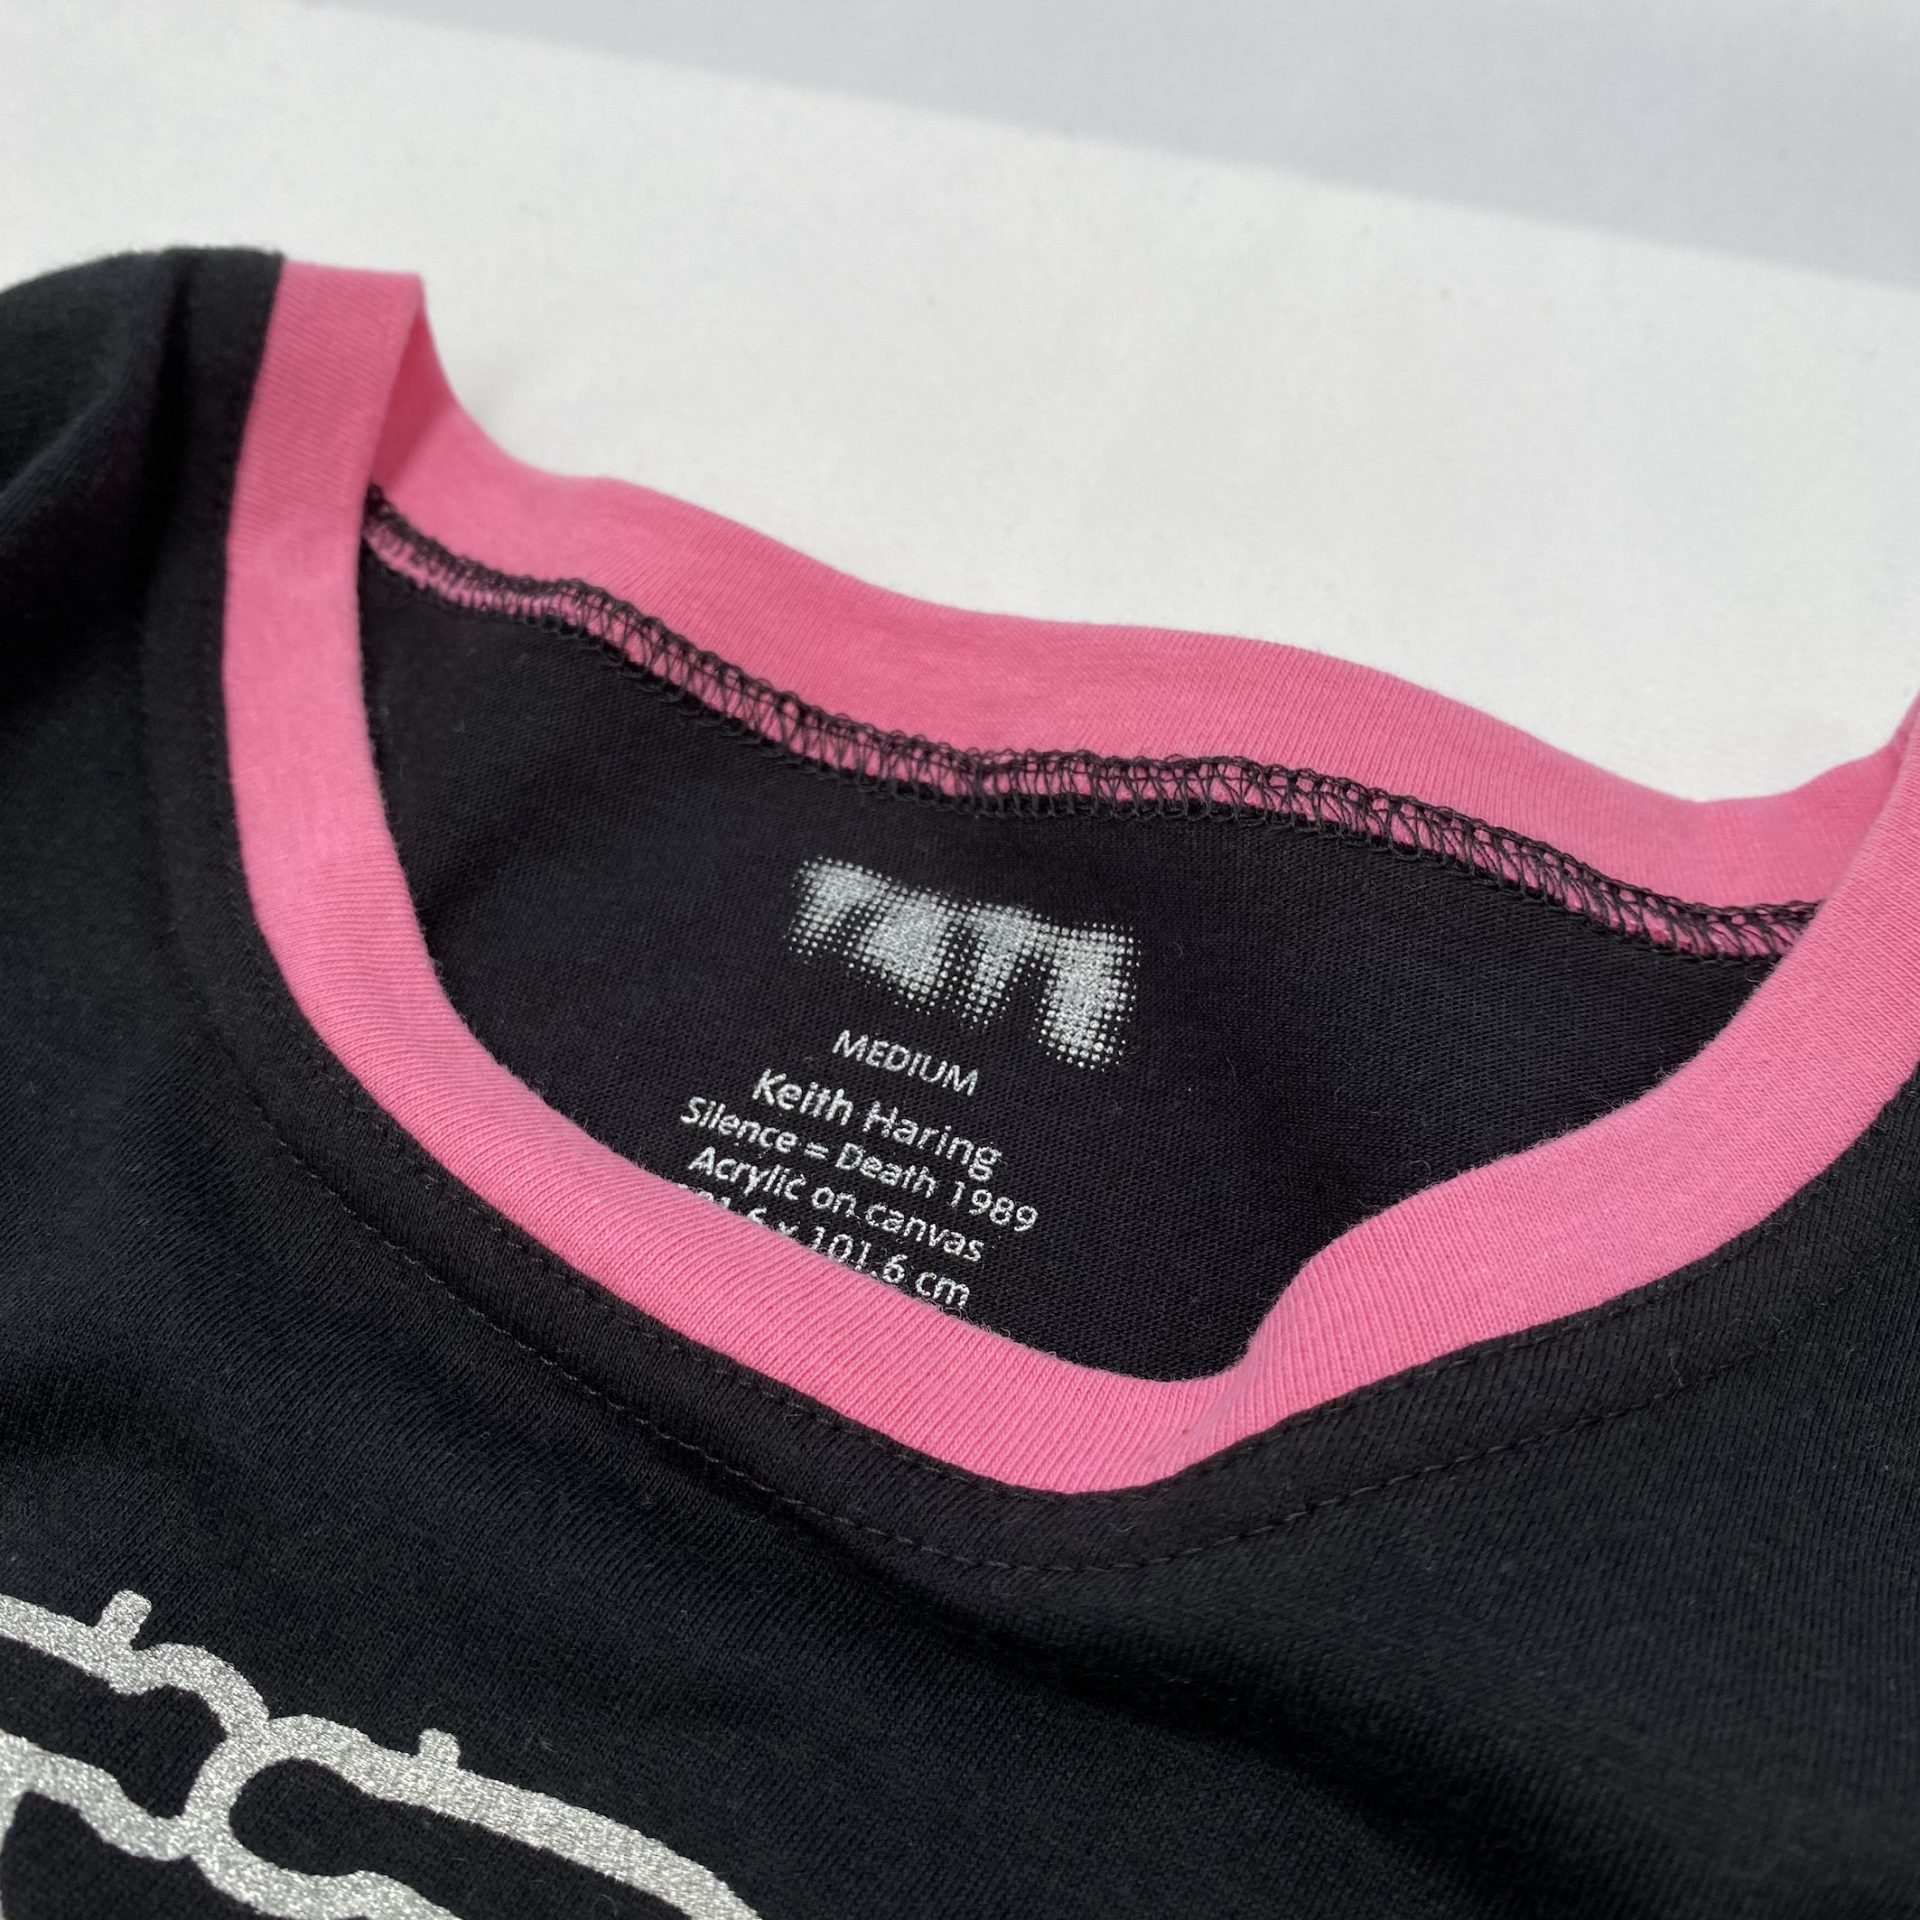 Bespoke adjustment to a t-shirt by Paul Bristow's who supply cultural attractions with textile merchandise